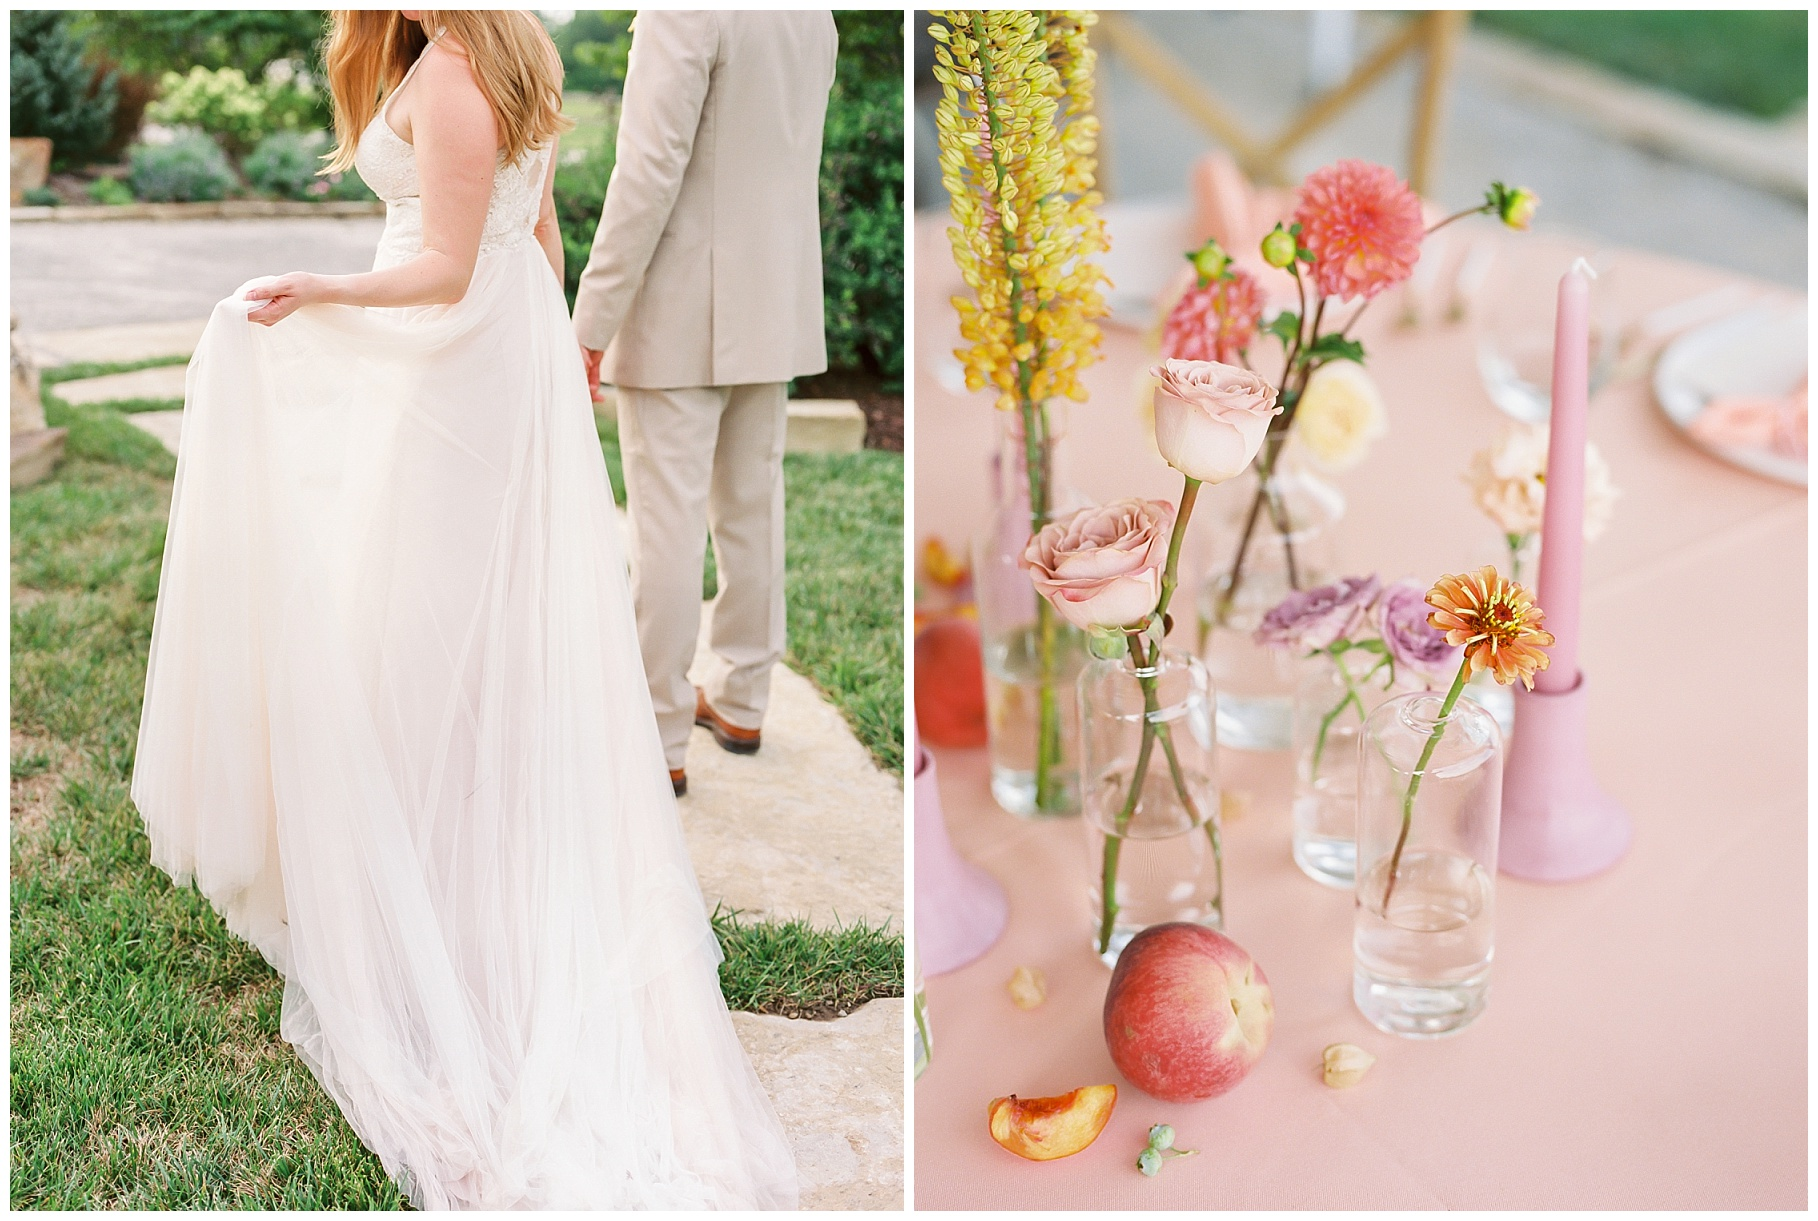 Late Summer Wedding With Pastel Toned Soiree at Blue Bell Farm by Kelsi Kliethermes Photography Best Columbia Missouri Wedding Photographer_0046.jpg